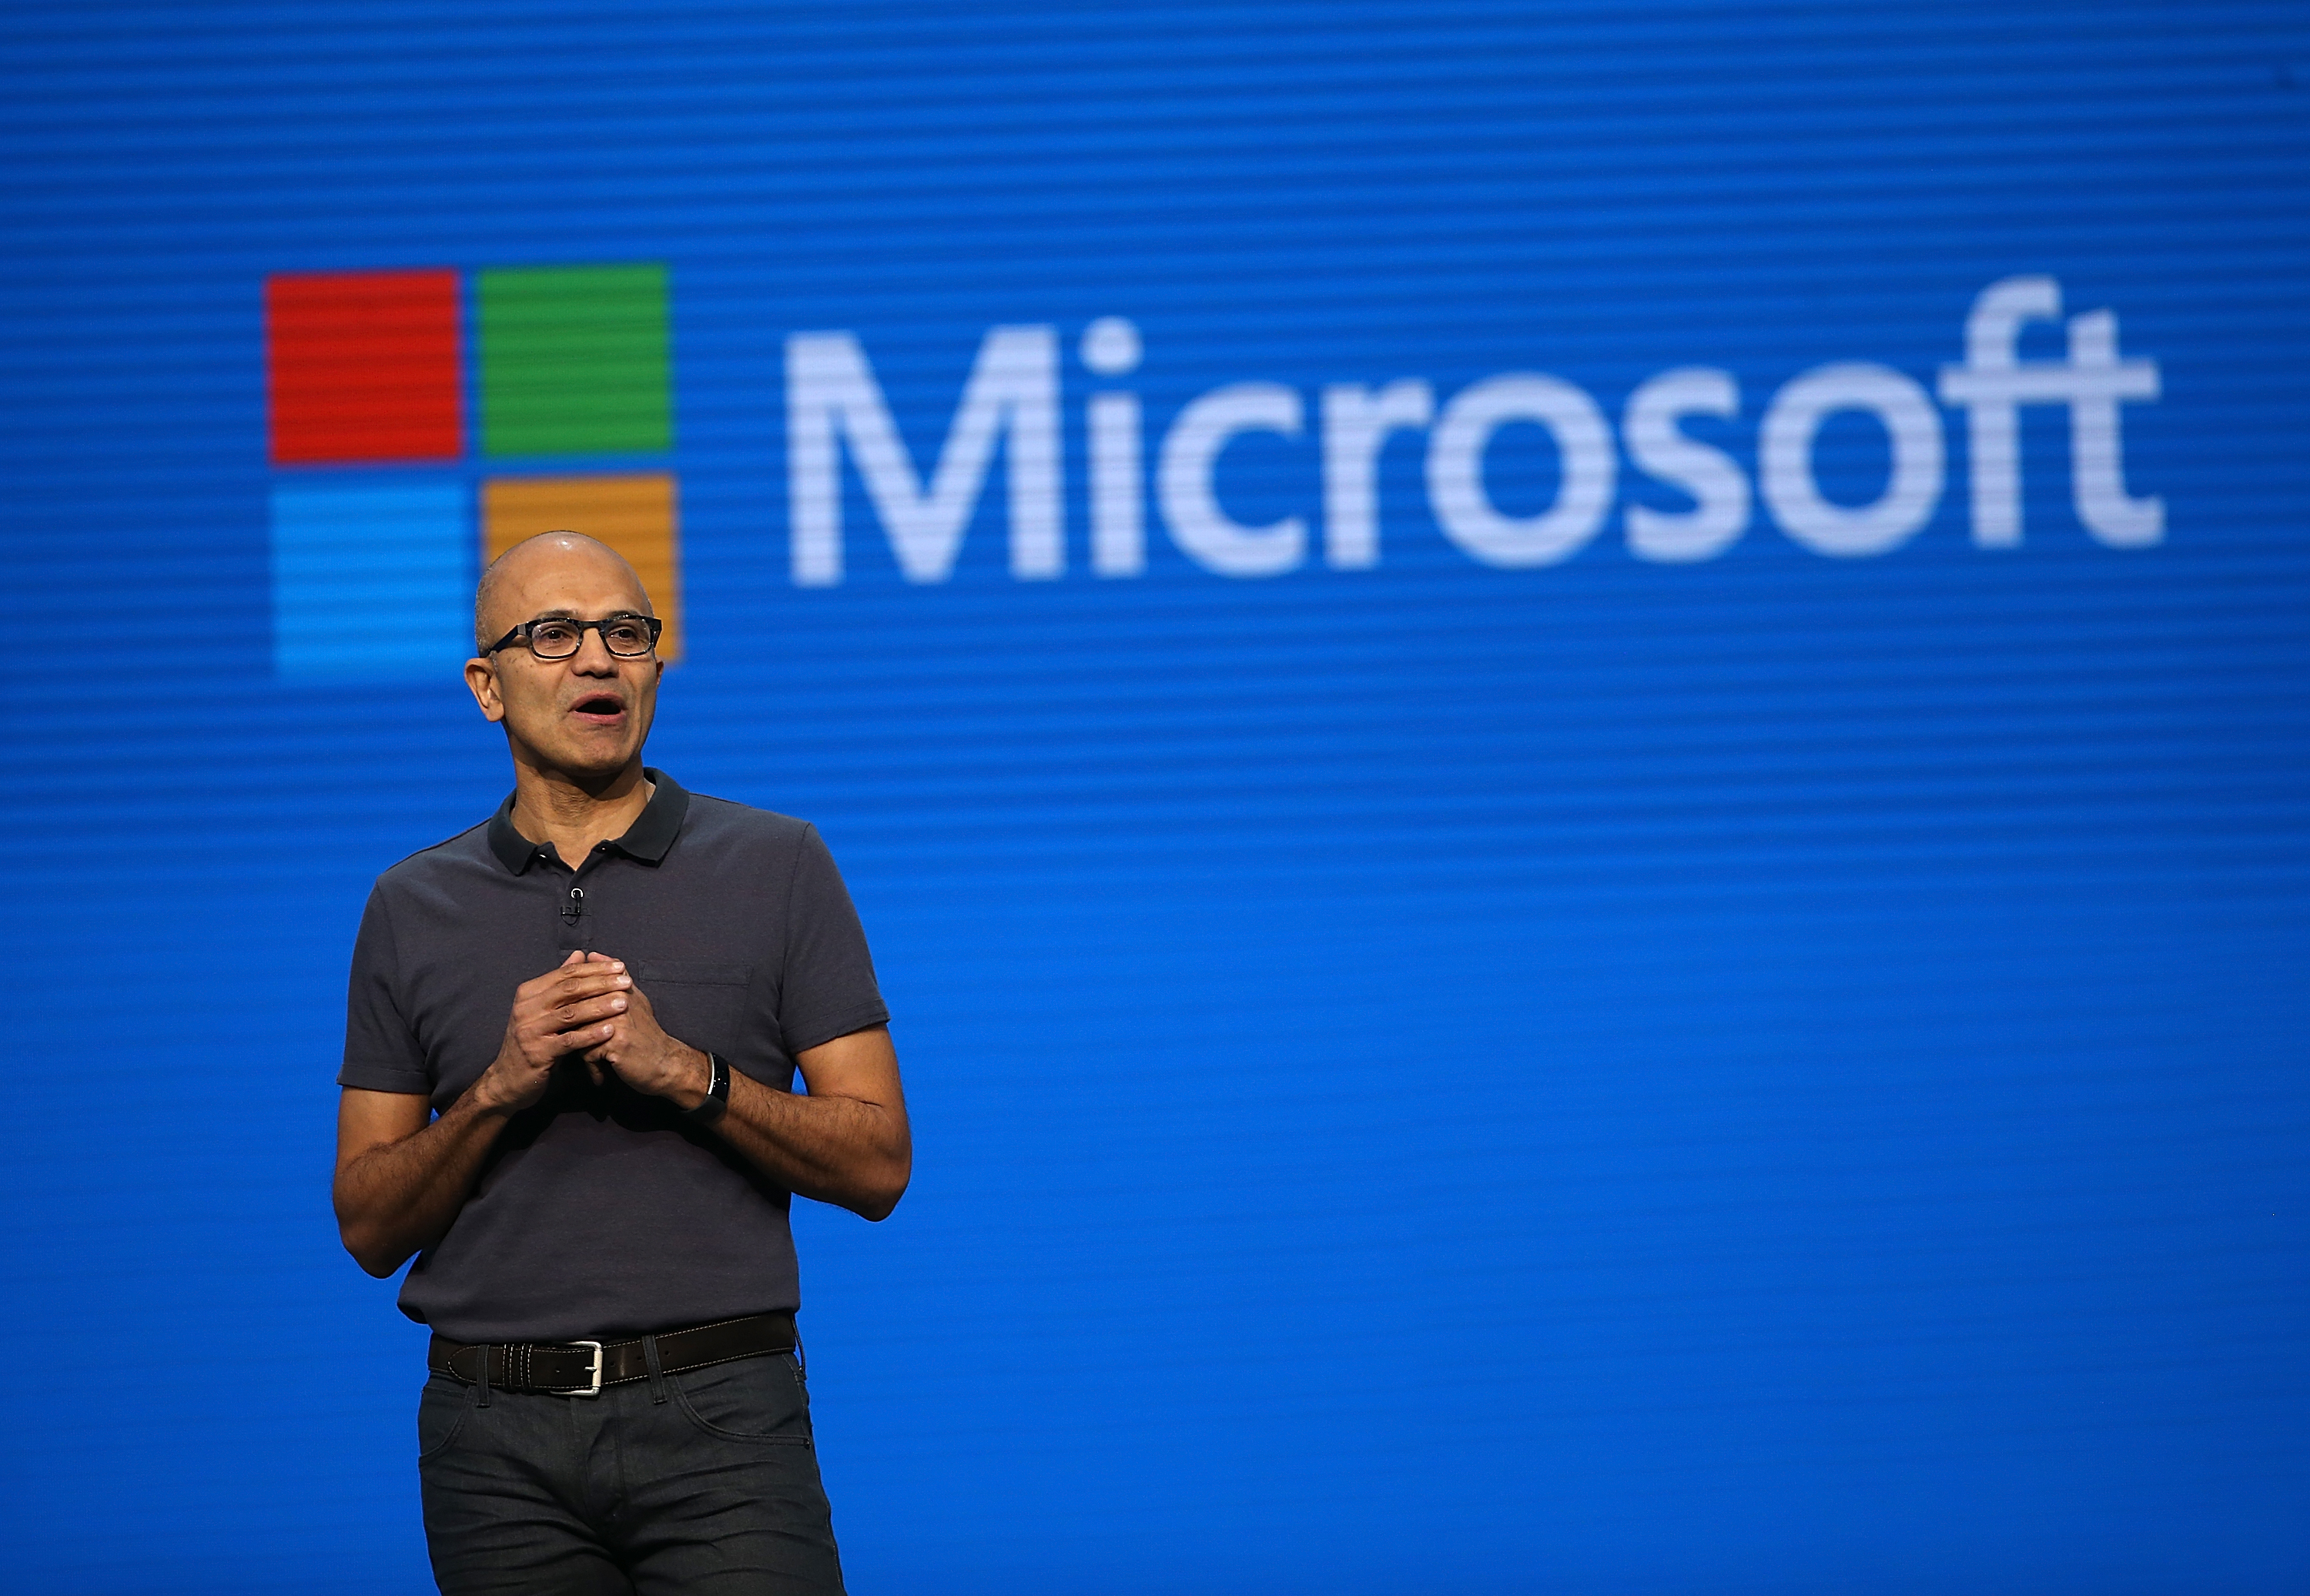 Microsoft CEO Satya Nadella during the  Microsoft Build Developer Conference on March 30, 2016 in San Francisco